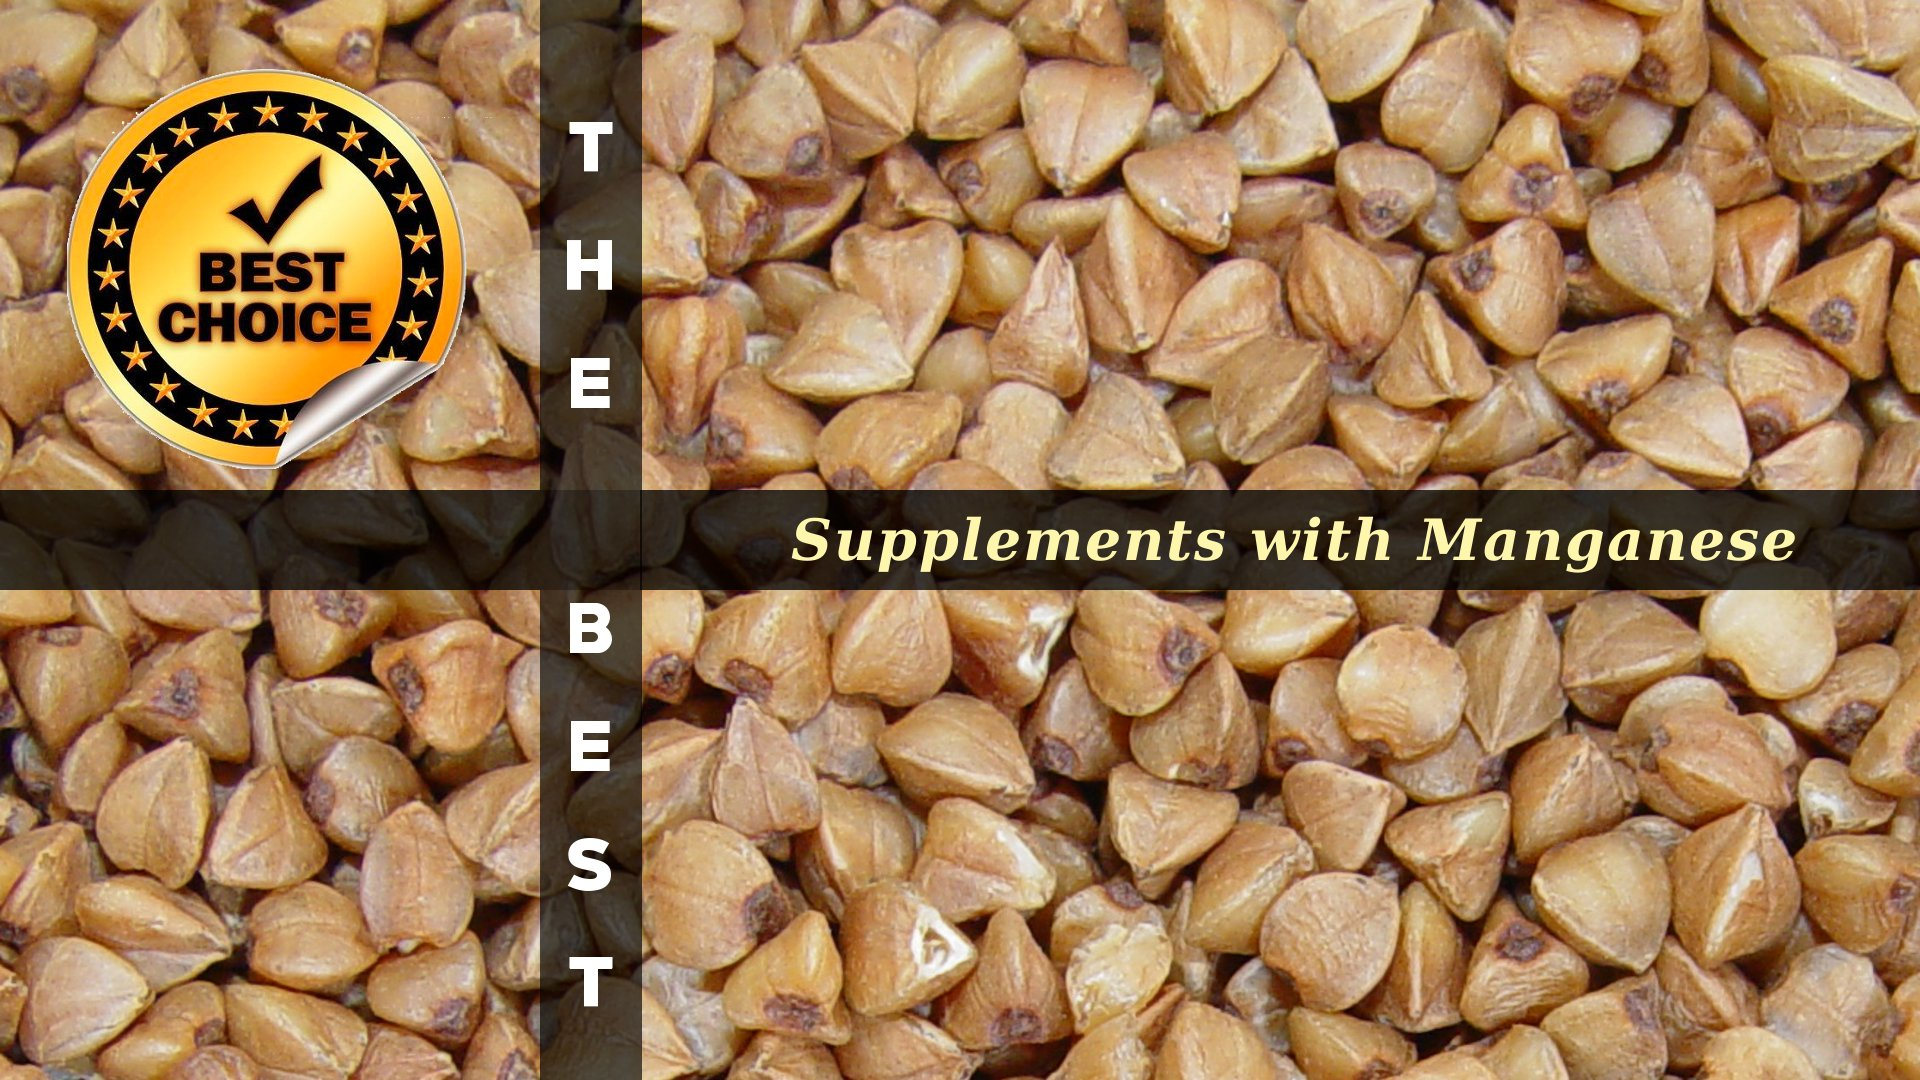 The Supplements with Manganese